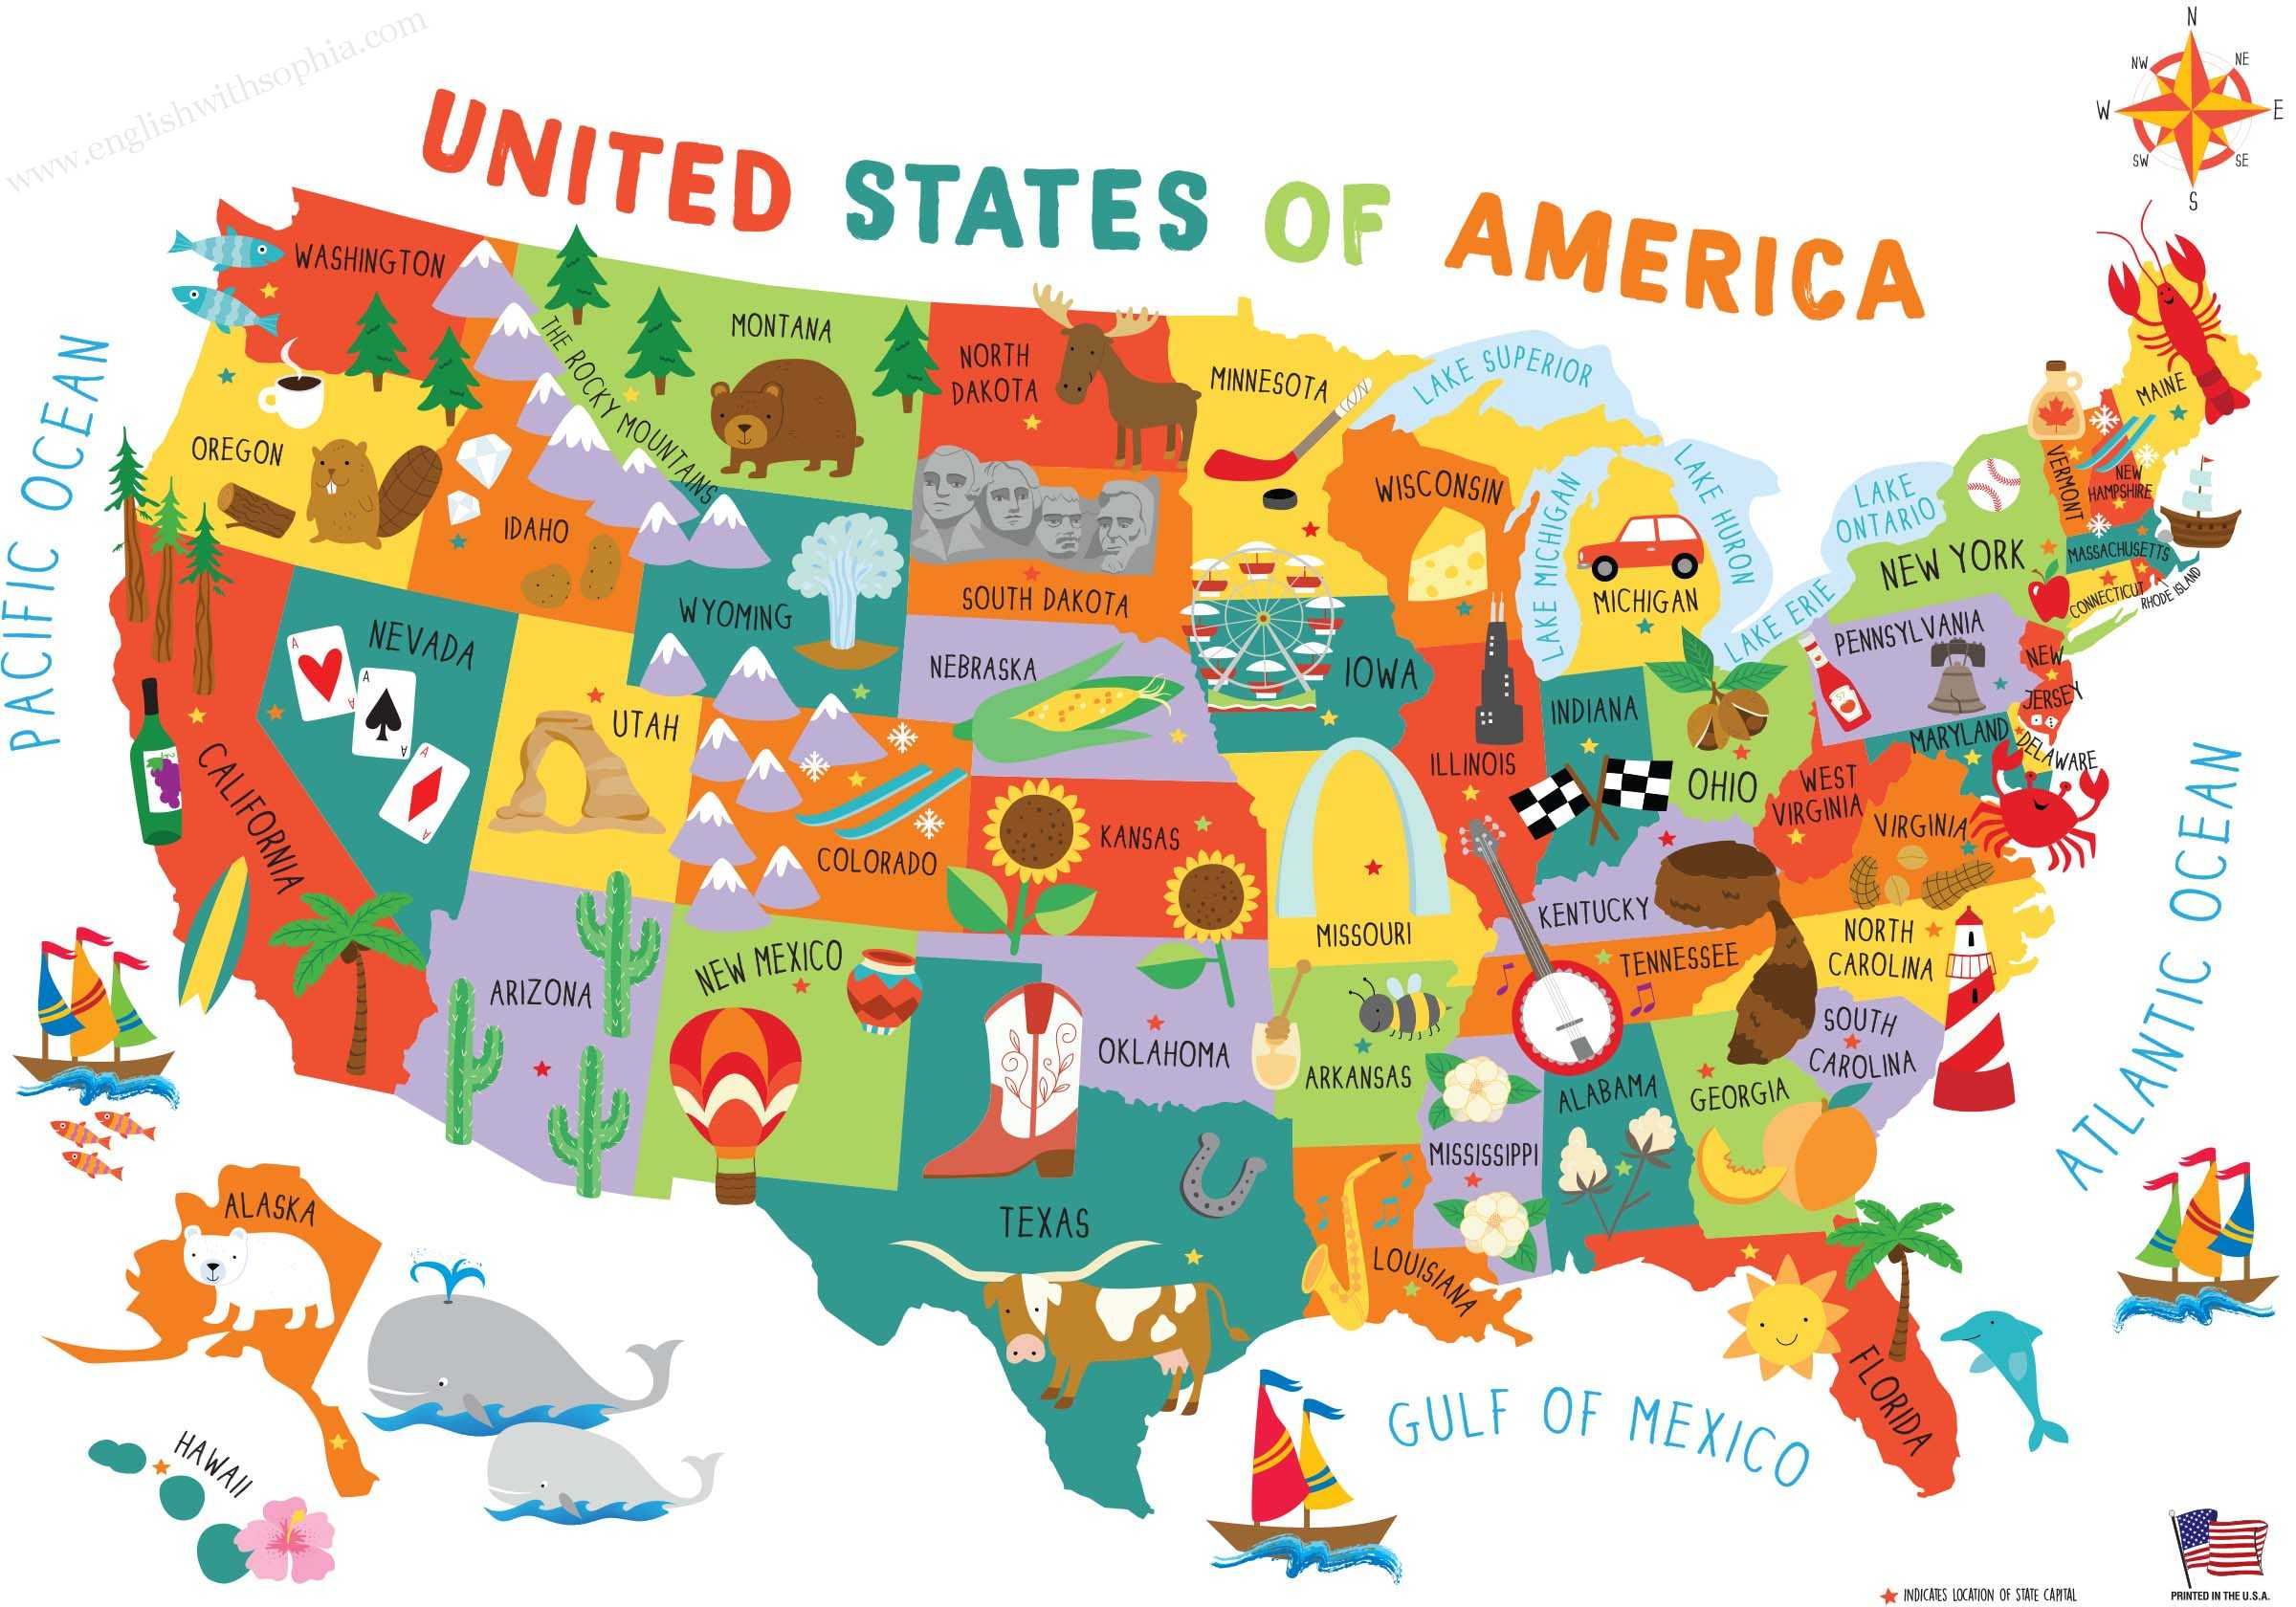 exciting facts about the USA